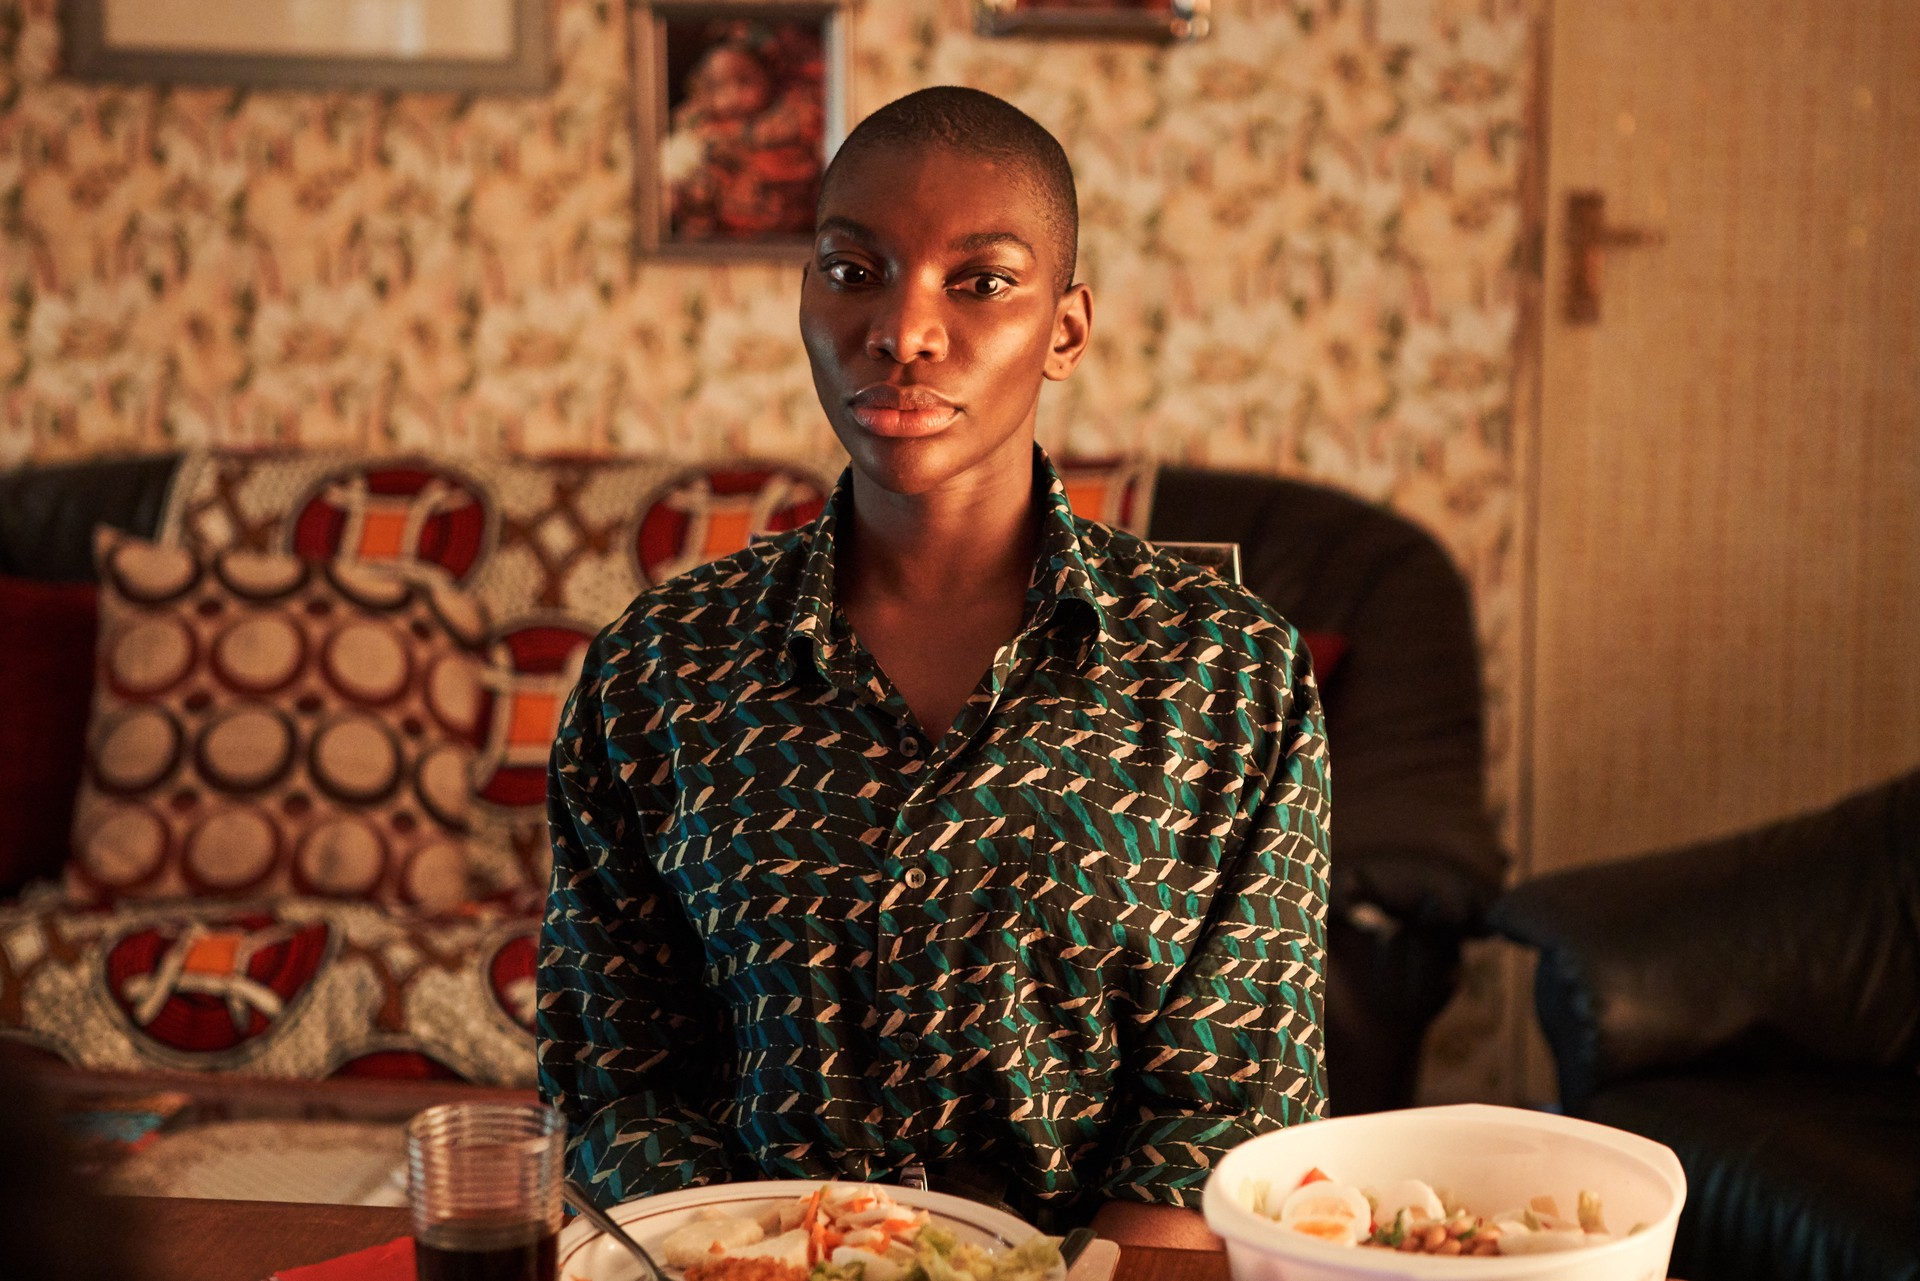 Arabella sitting at table in patterned shirt against patterned background.